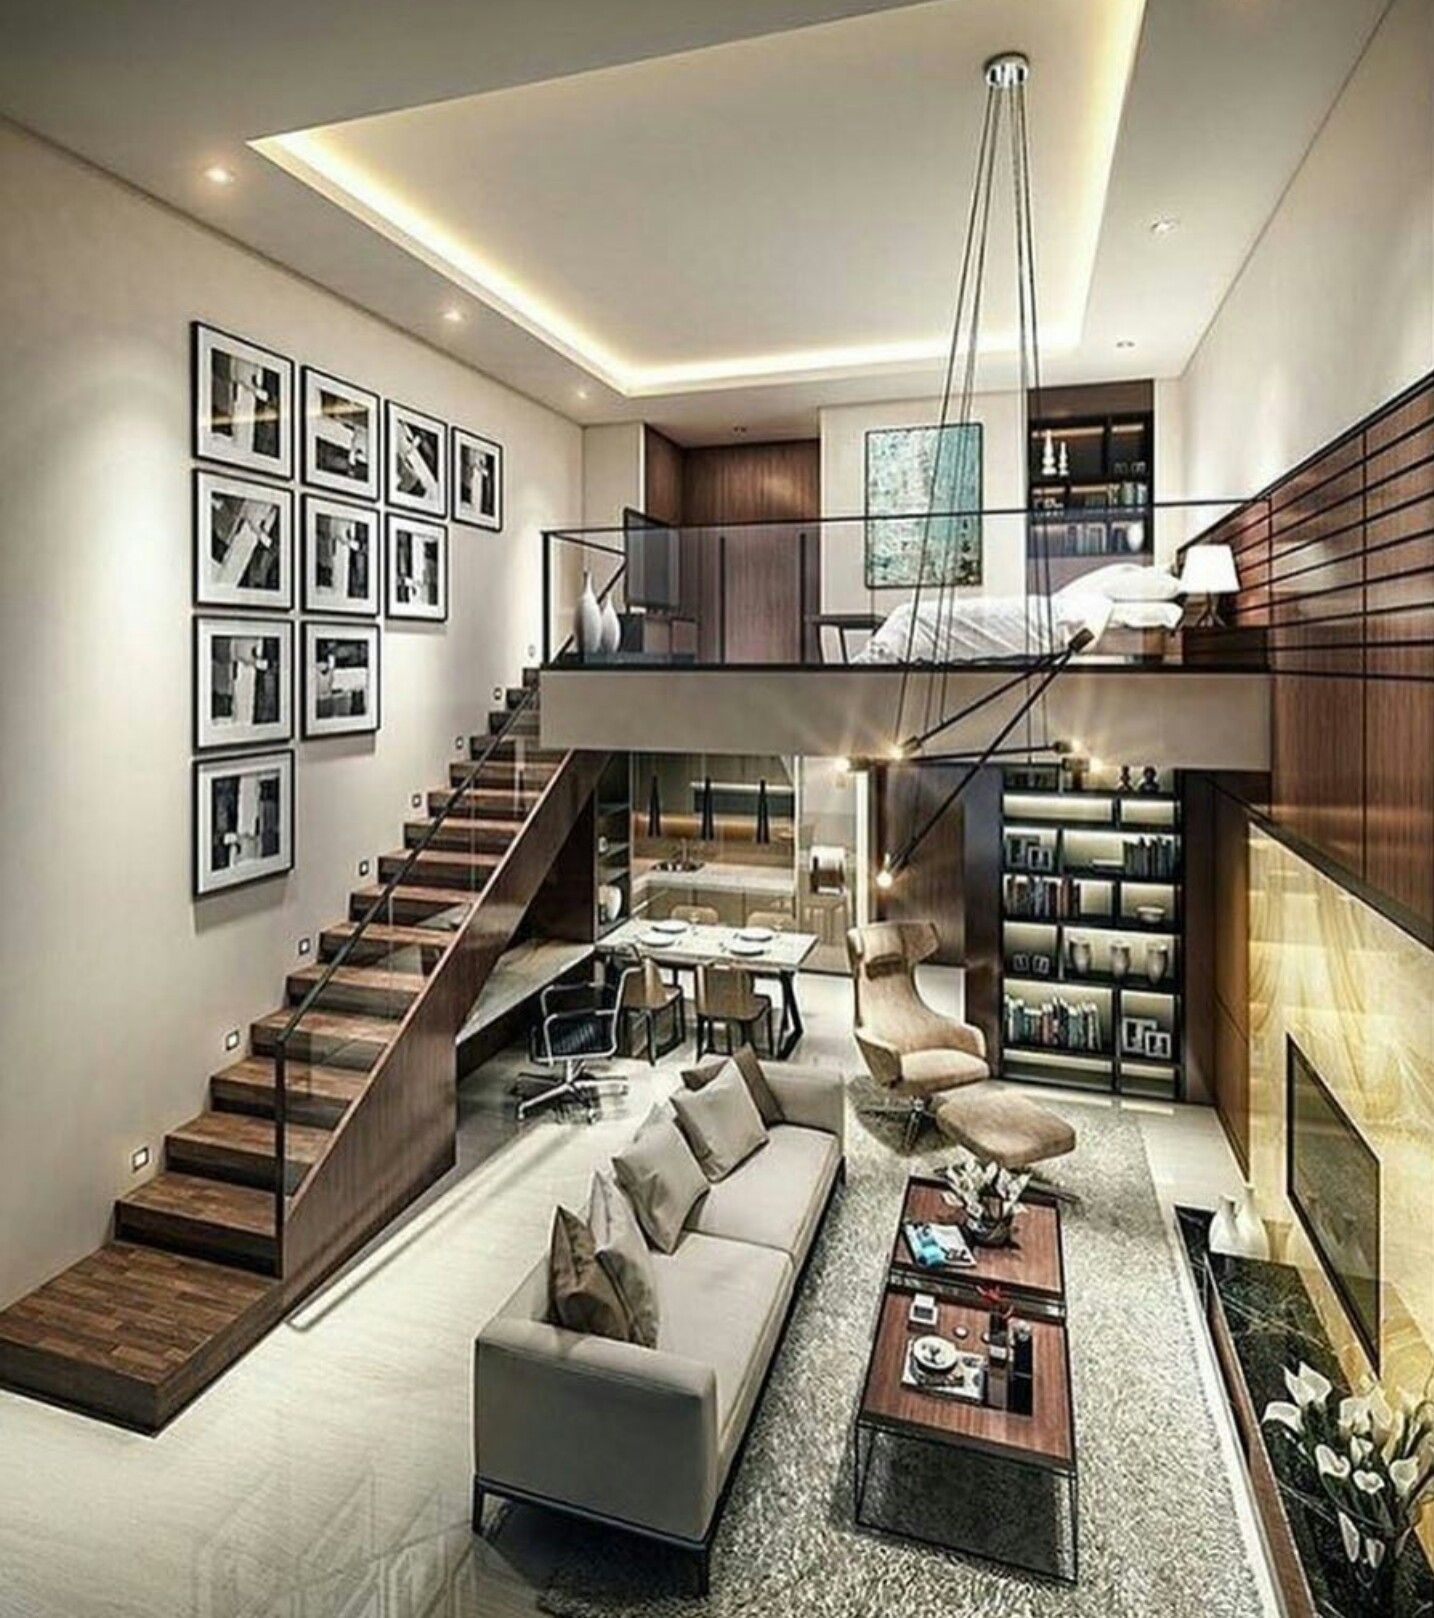 Pin By Juanita Jackson On Building Dream House 2020 With Images